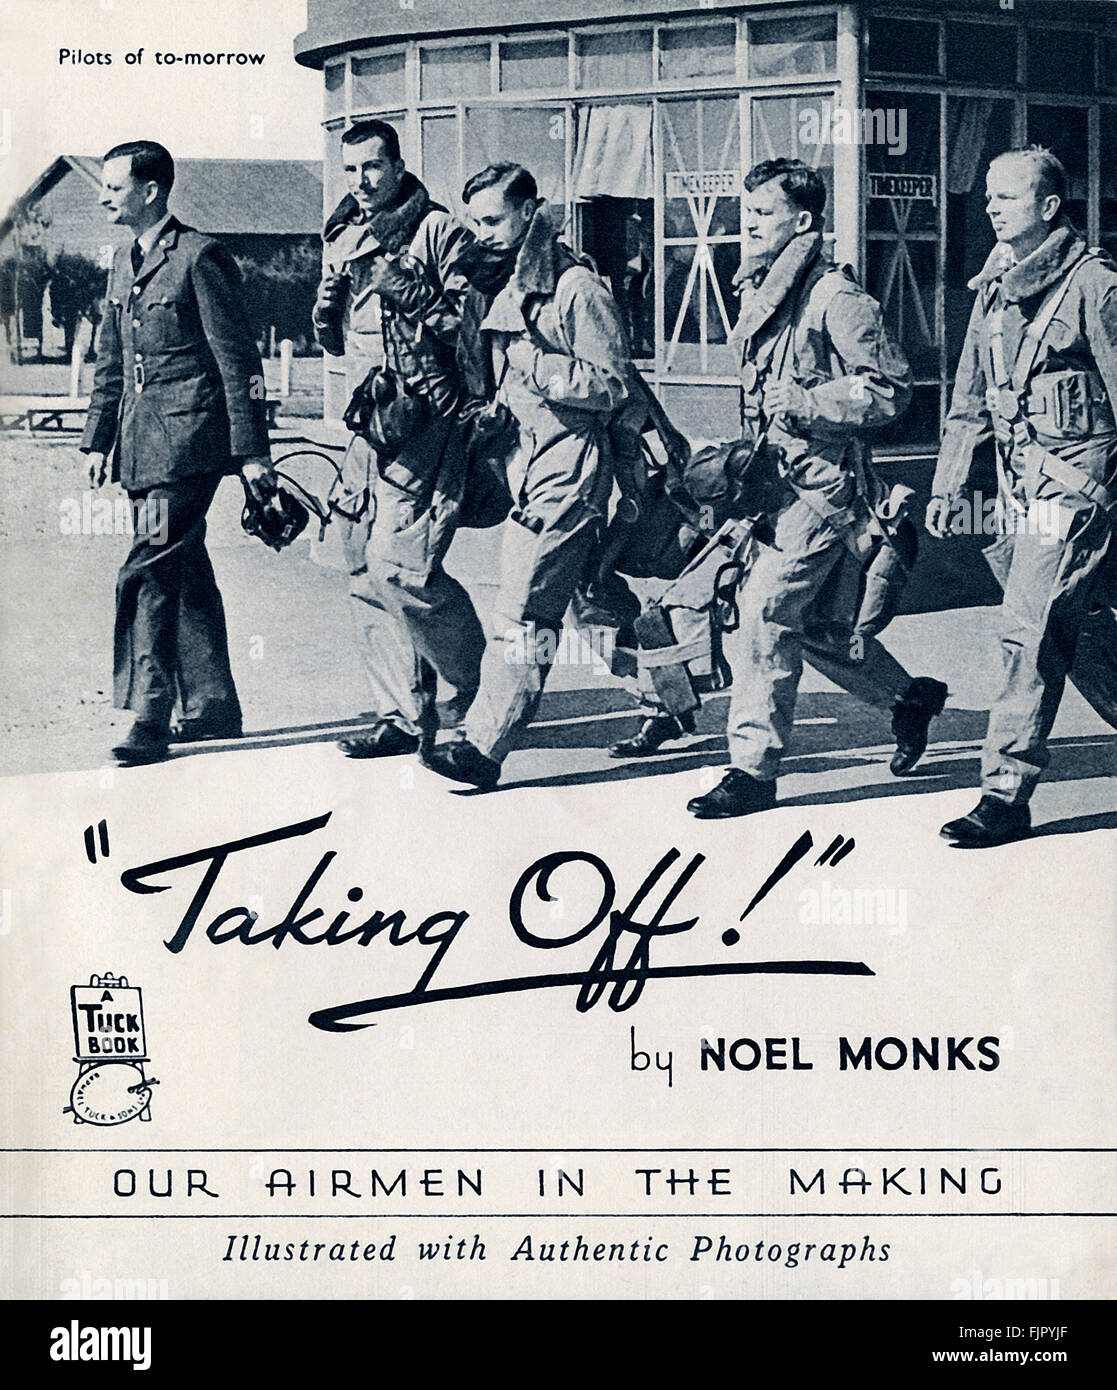 title page for  TAKING OFF! Our airmen in the making. By Noel Monks, c 1940. - Stock Image